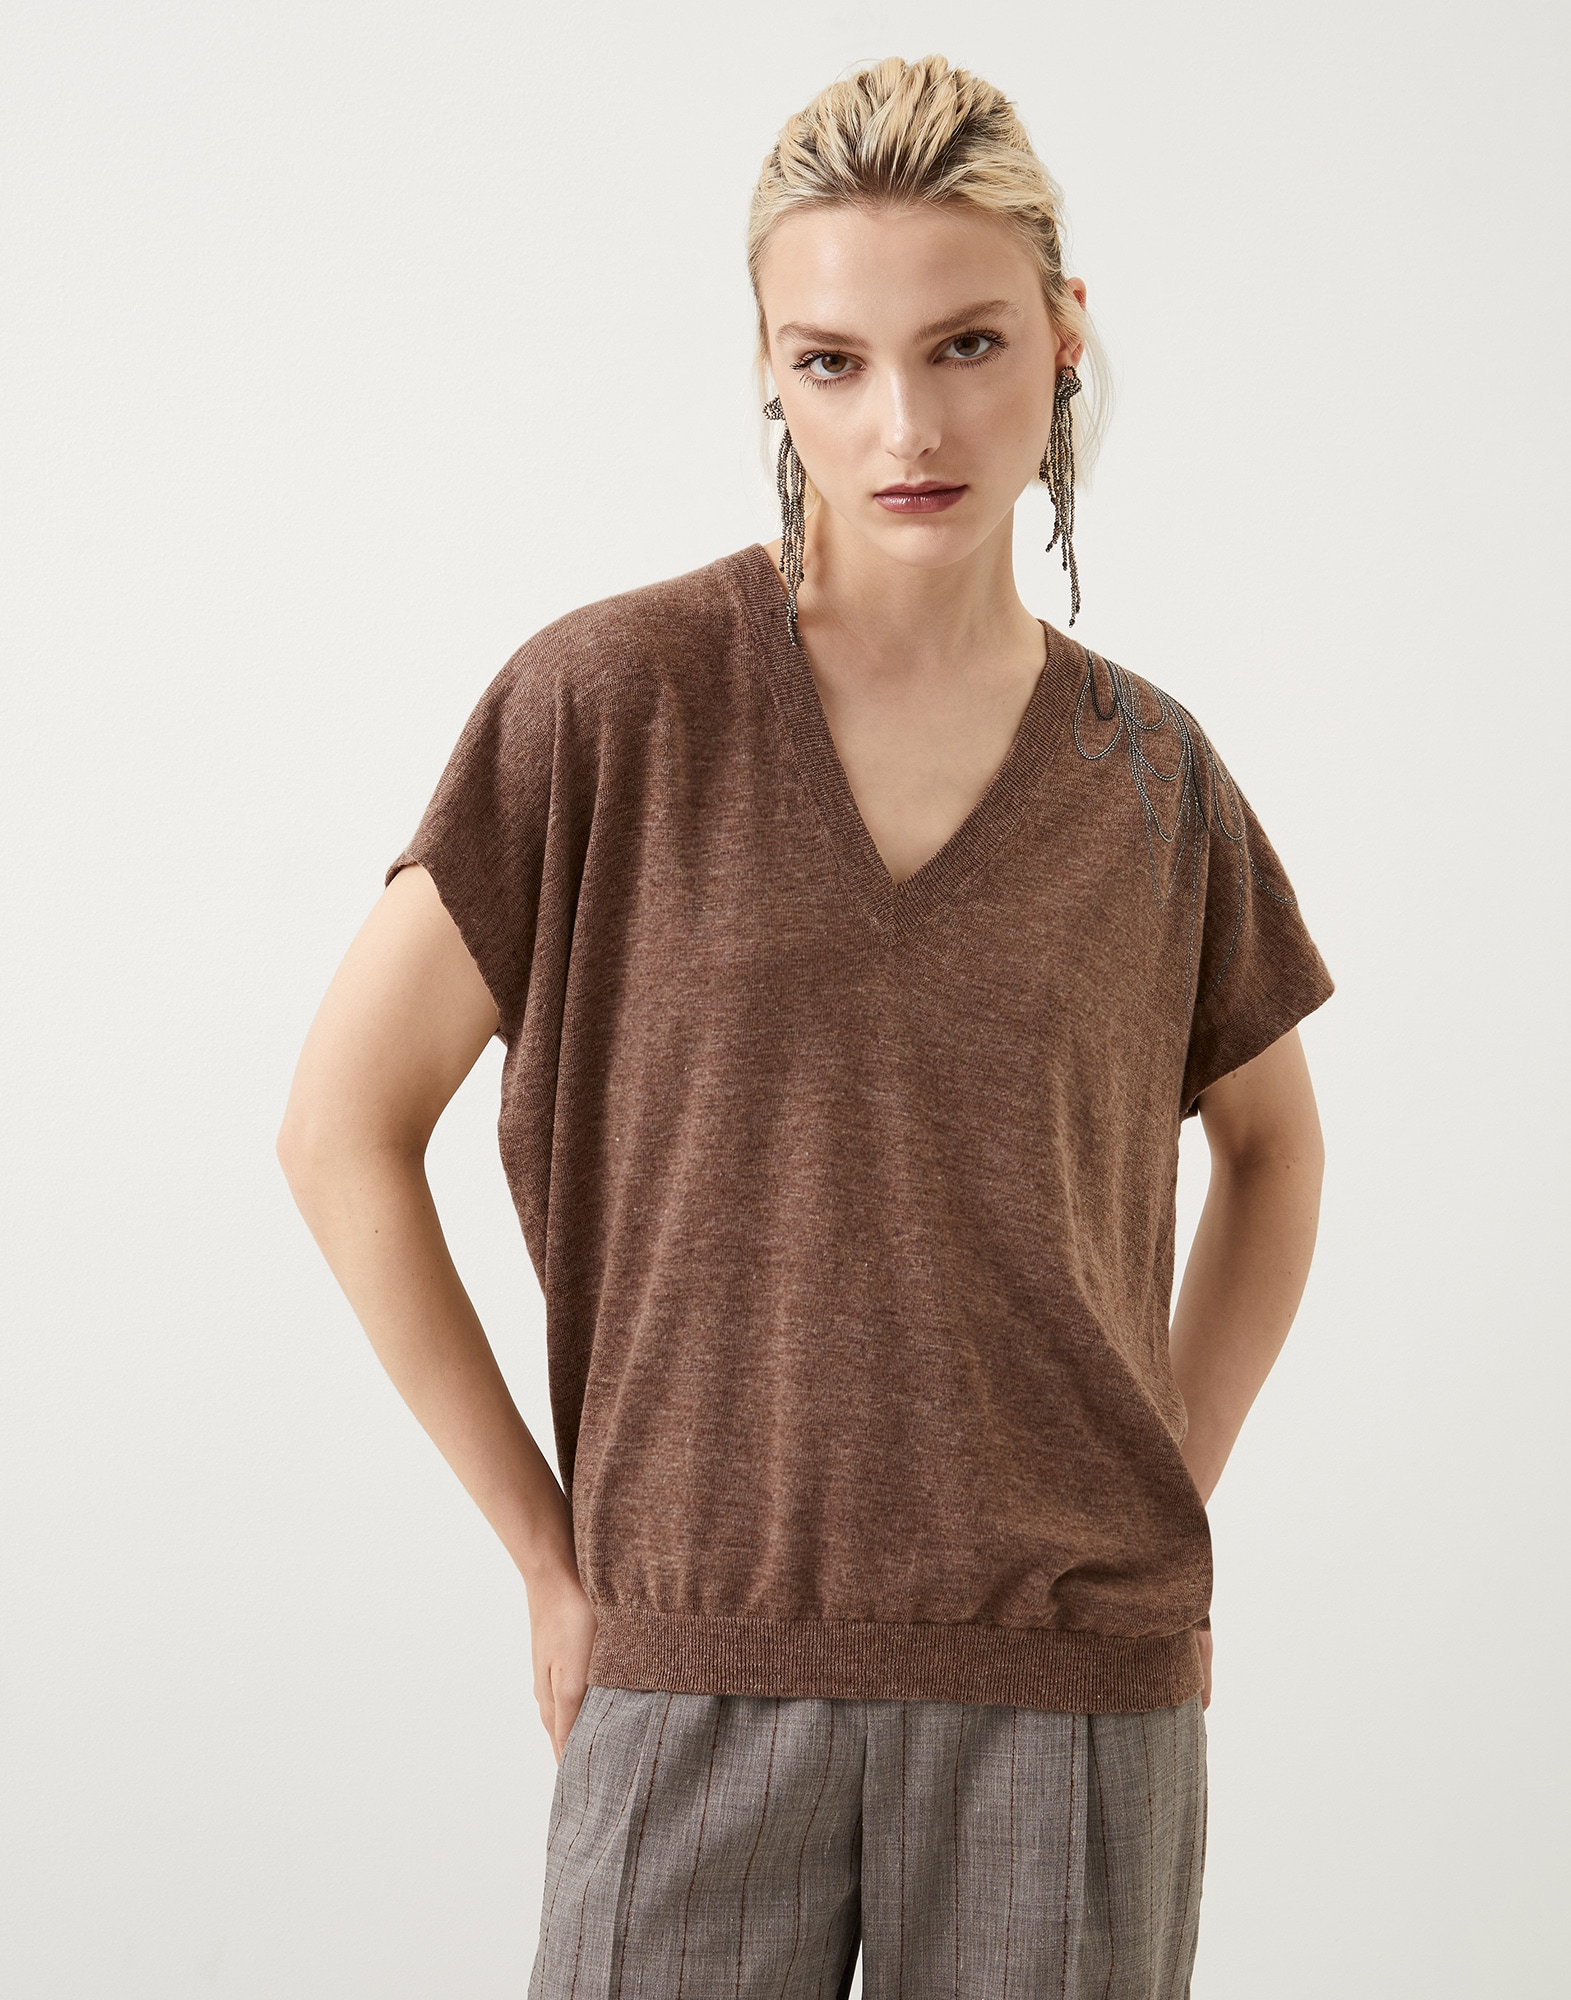 V-neck - Front view